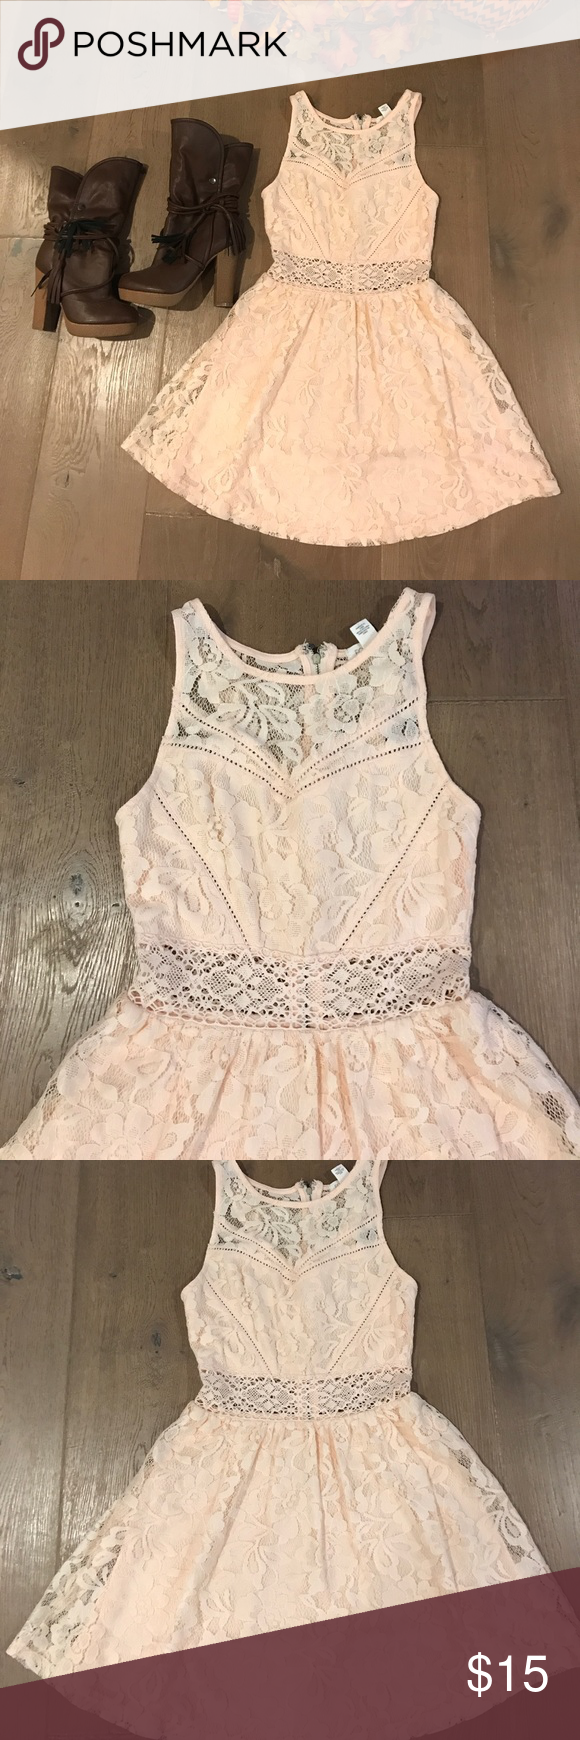 Pink see through lace dress  Host PickBlush Pink Lace Dress  Pink lace dresses Blush pink